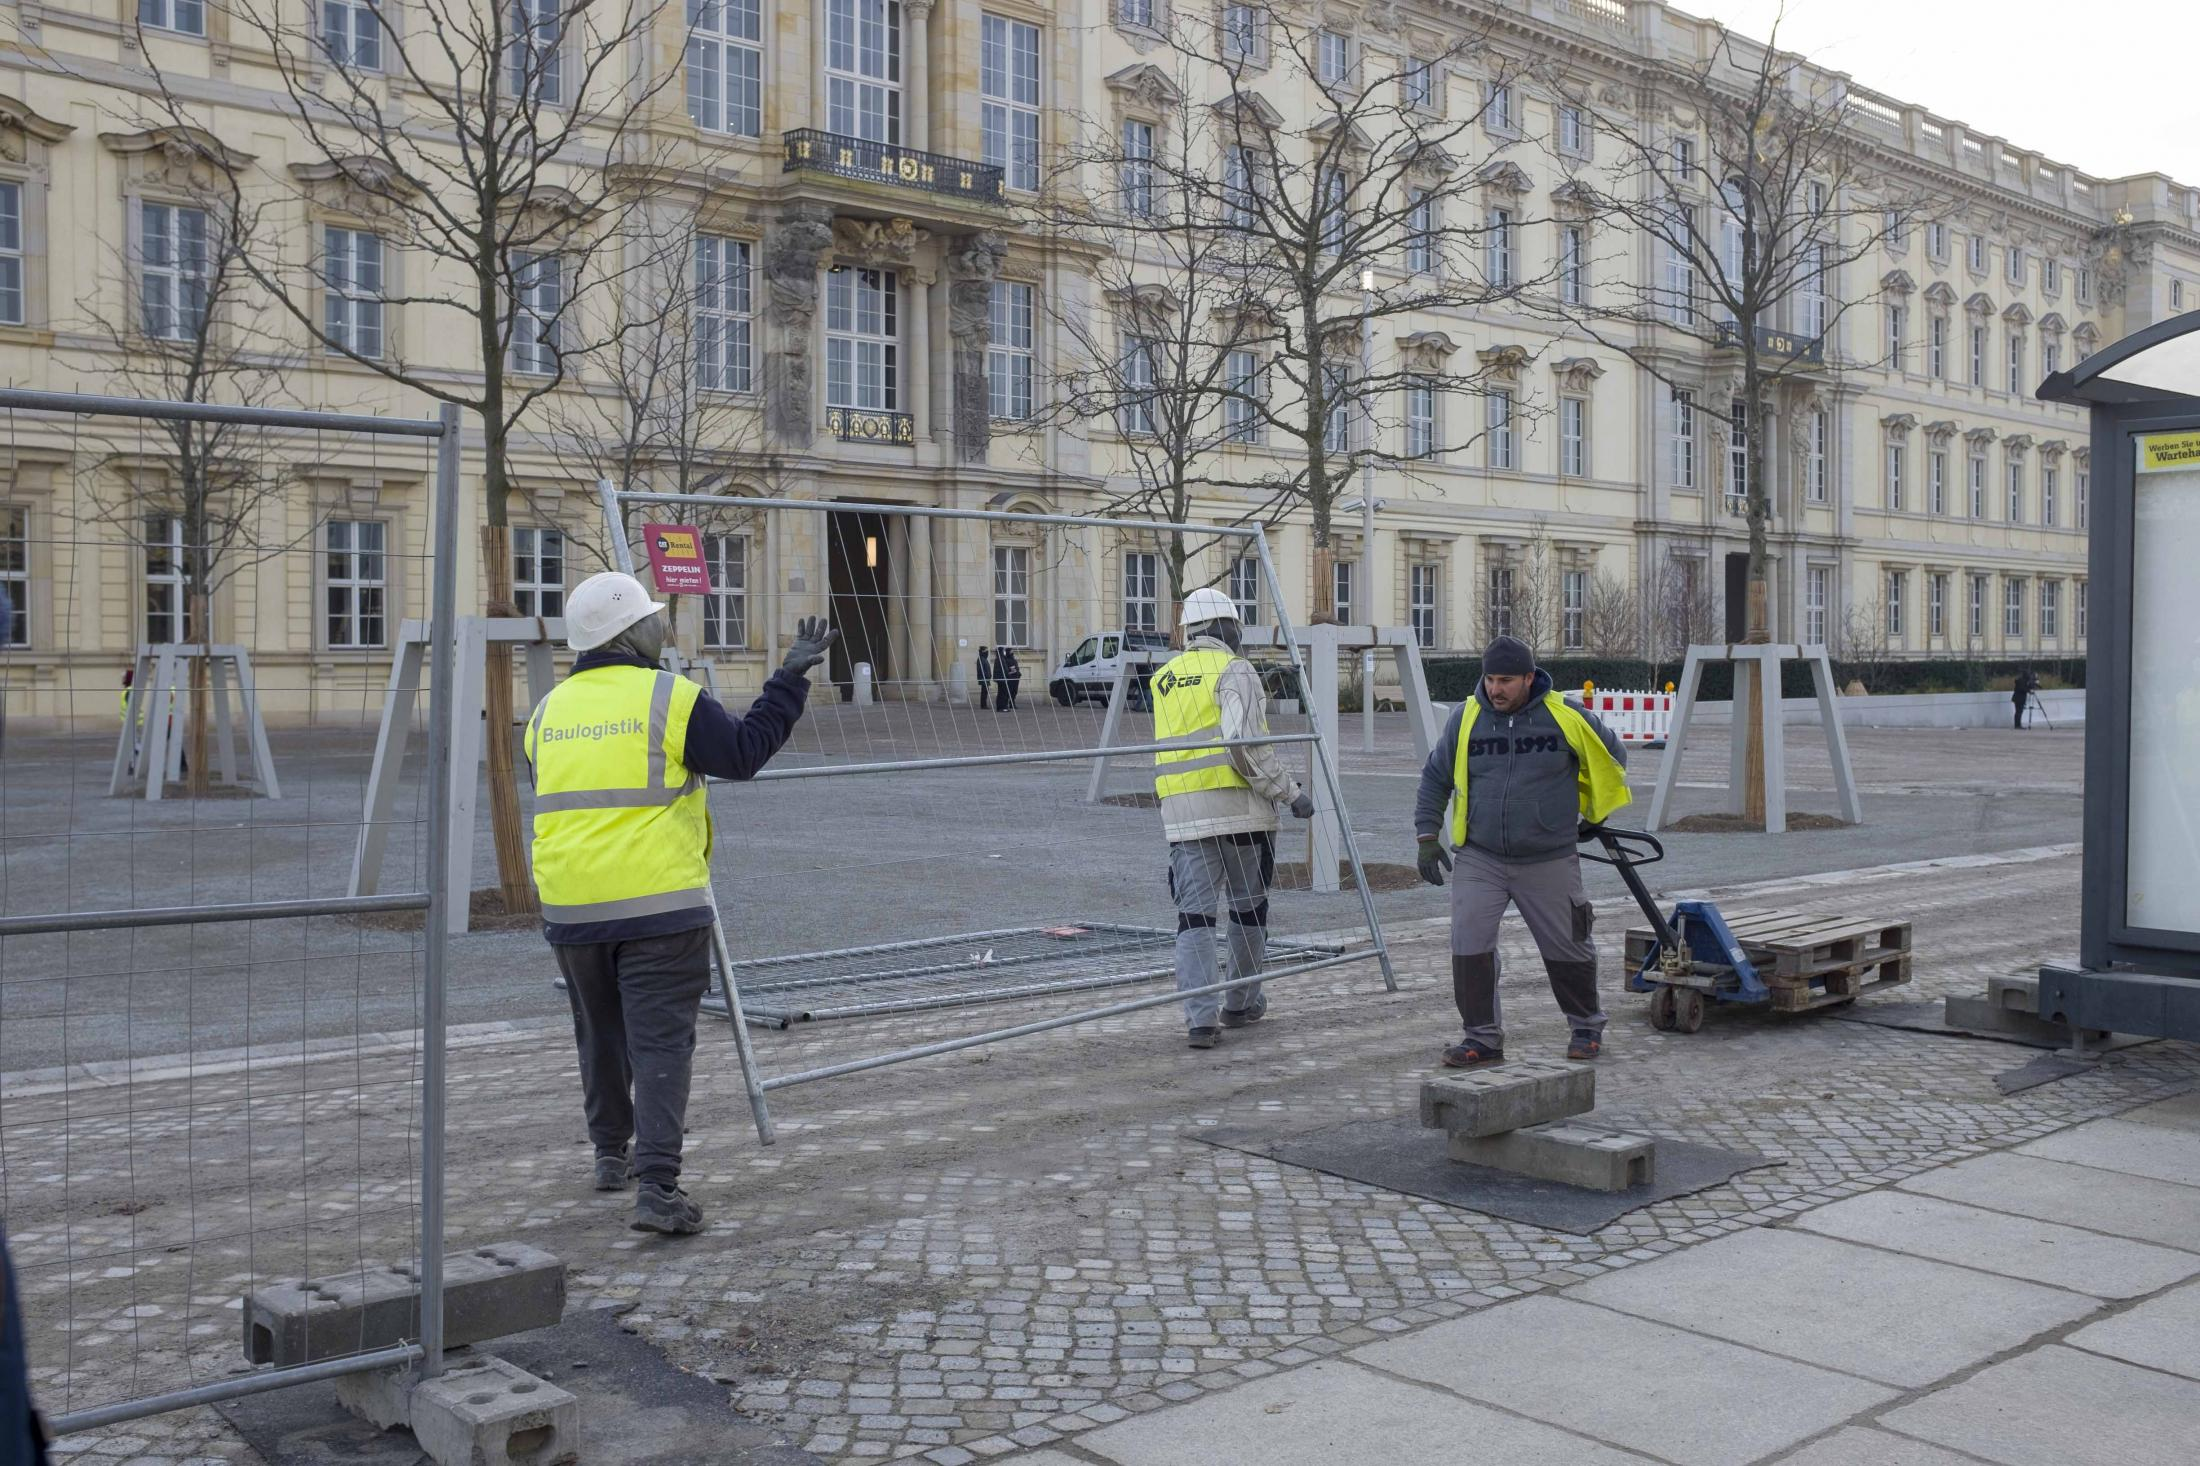 Workers take down the construction hoarding around the reconstructed Berlin Palace. After 20 years of debate in the 90s and 2000s, and eight years of construction time, the Humboldt Forum museum, which is housed in the building, was inaugurated yesterday in a virtual ceremony. At a total construction cost of 595 million euros, it is the second major joint construction project of the federal and state government that is finished this year. The other one is Berlin's BER airport, which opened in November after becoming famous for its massive delay in construction and equally massive spike in costs. While the new airport is currently operating way below its capacity due to the Coronavirus pandemic, the museum will remain closed for visitors for the time being. Berlin, December 17, 2020.